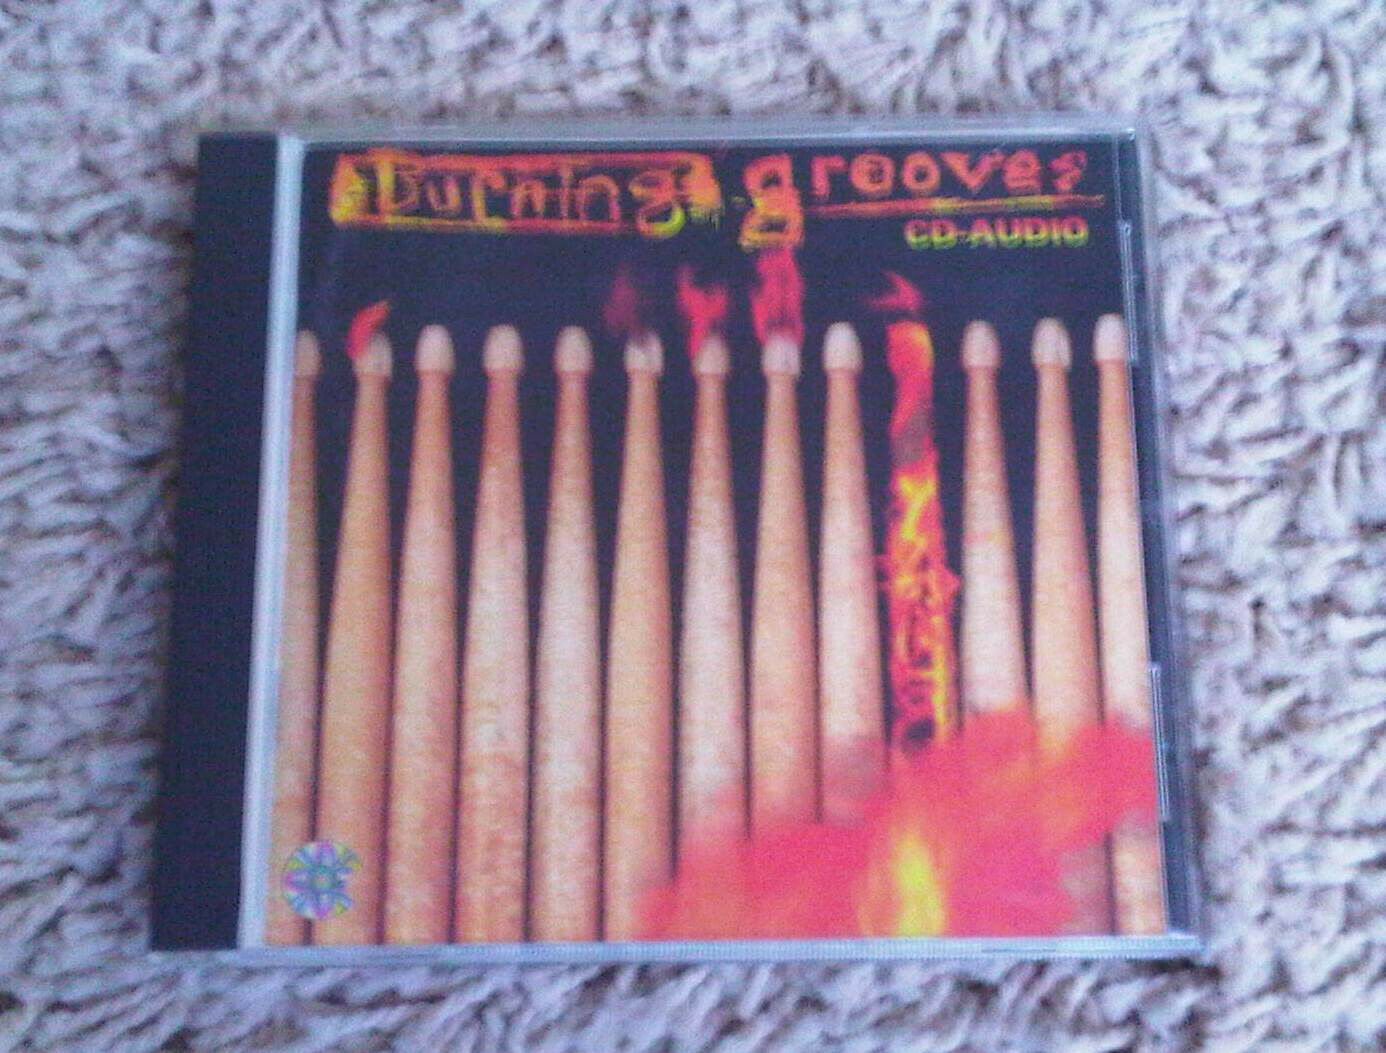 Spectrasonics - BURNING GROOVES - Audio Library - Copyright Clean - 1996